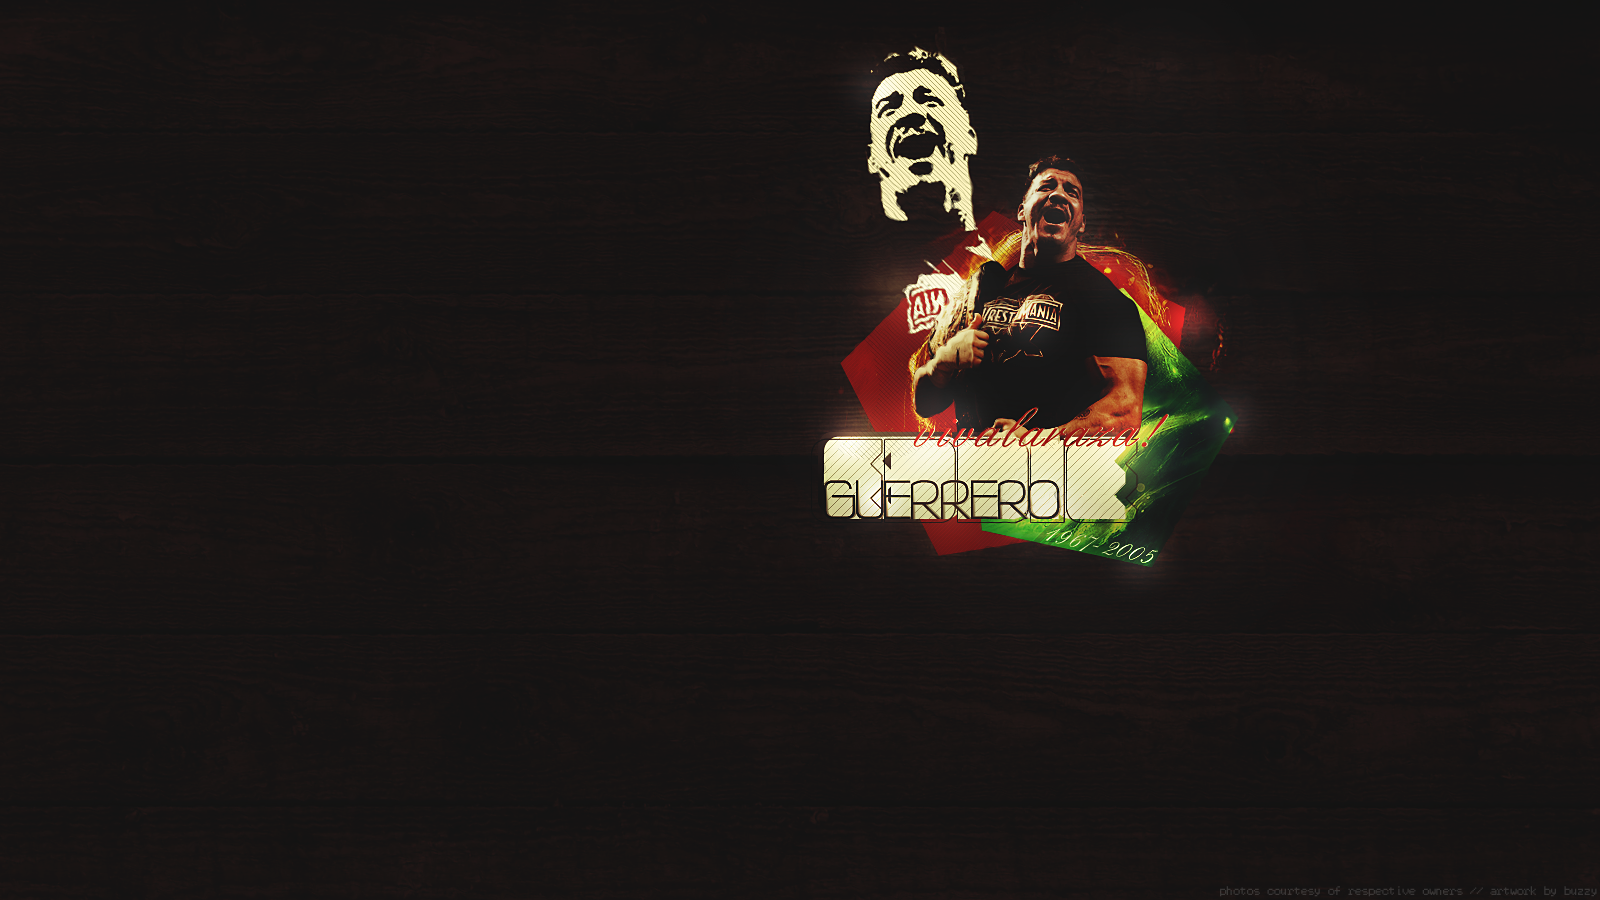 eddie guerrero wallpaper - photo #3